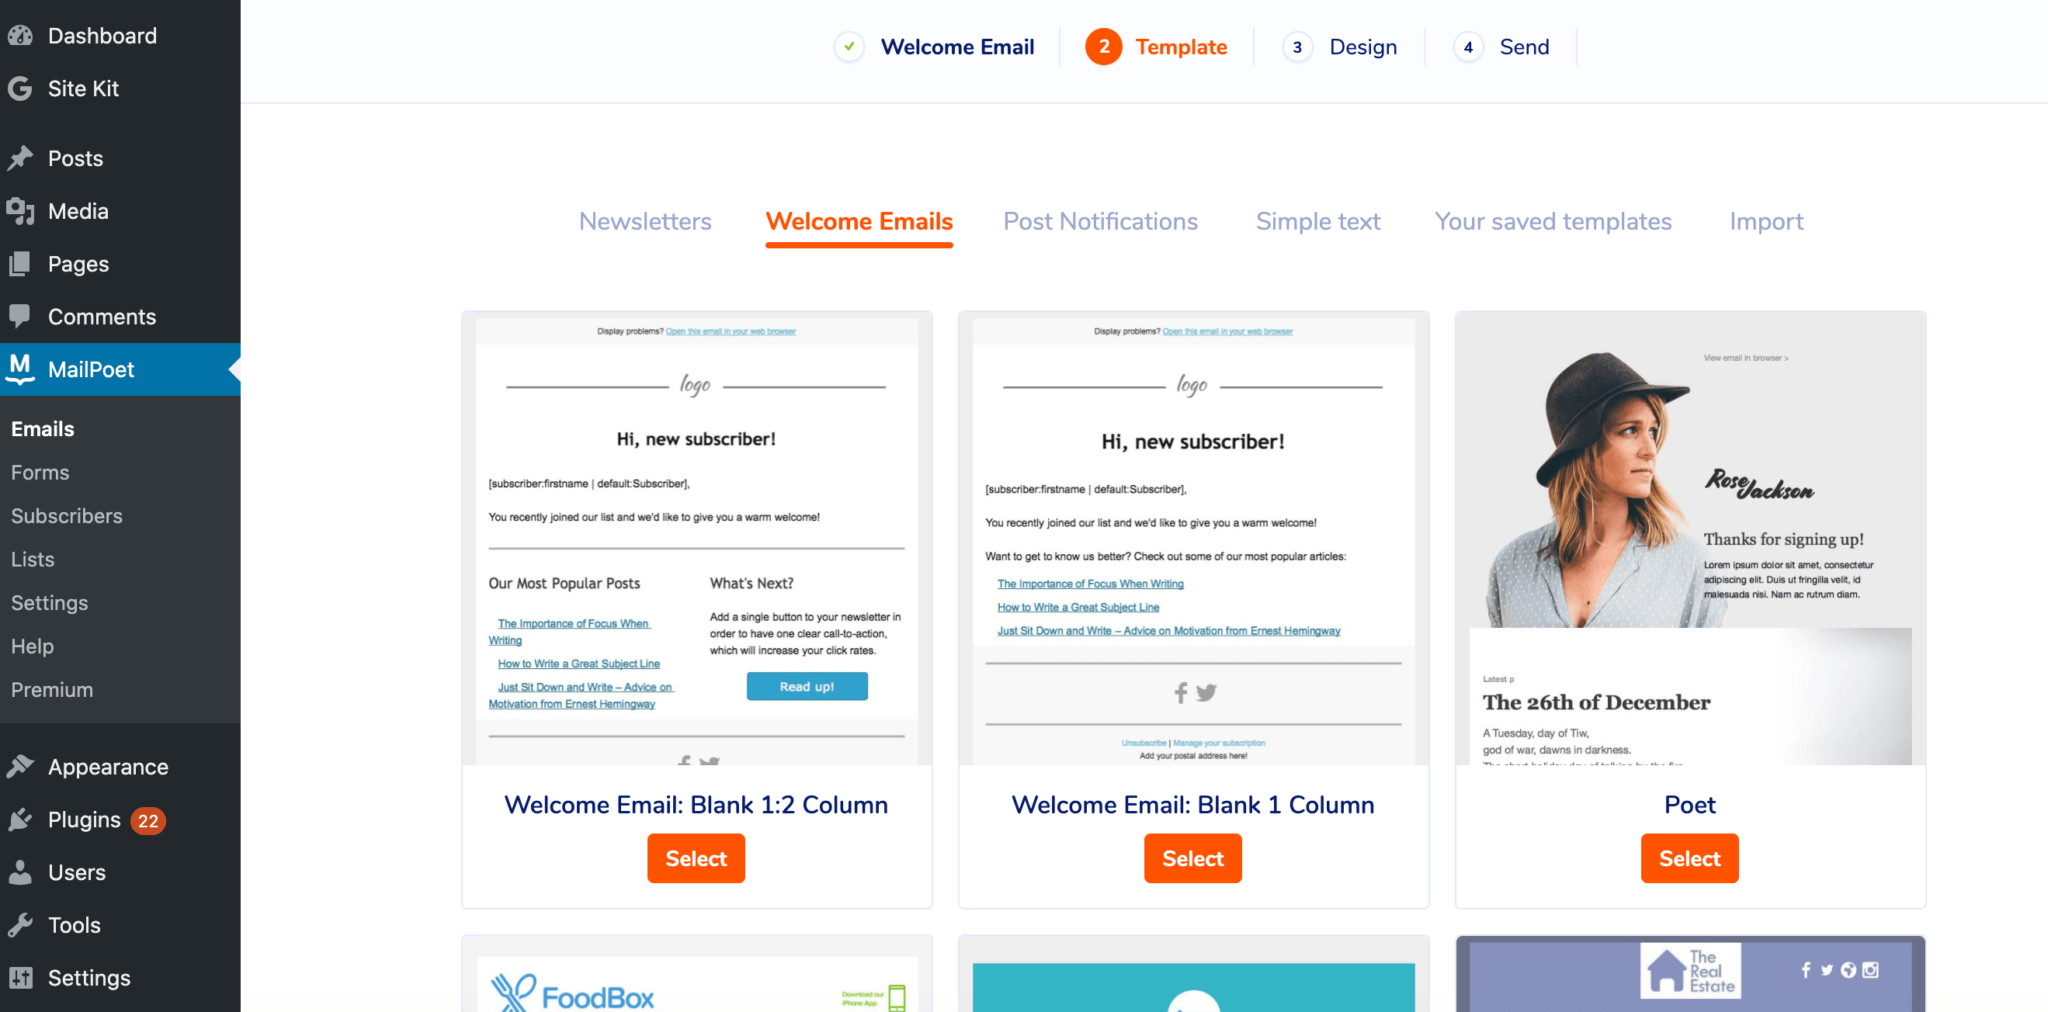 Welcome email templates in the MailPoet dashboard.